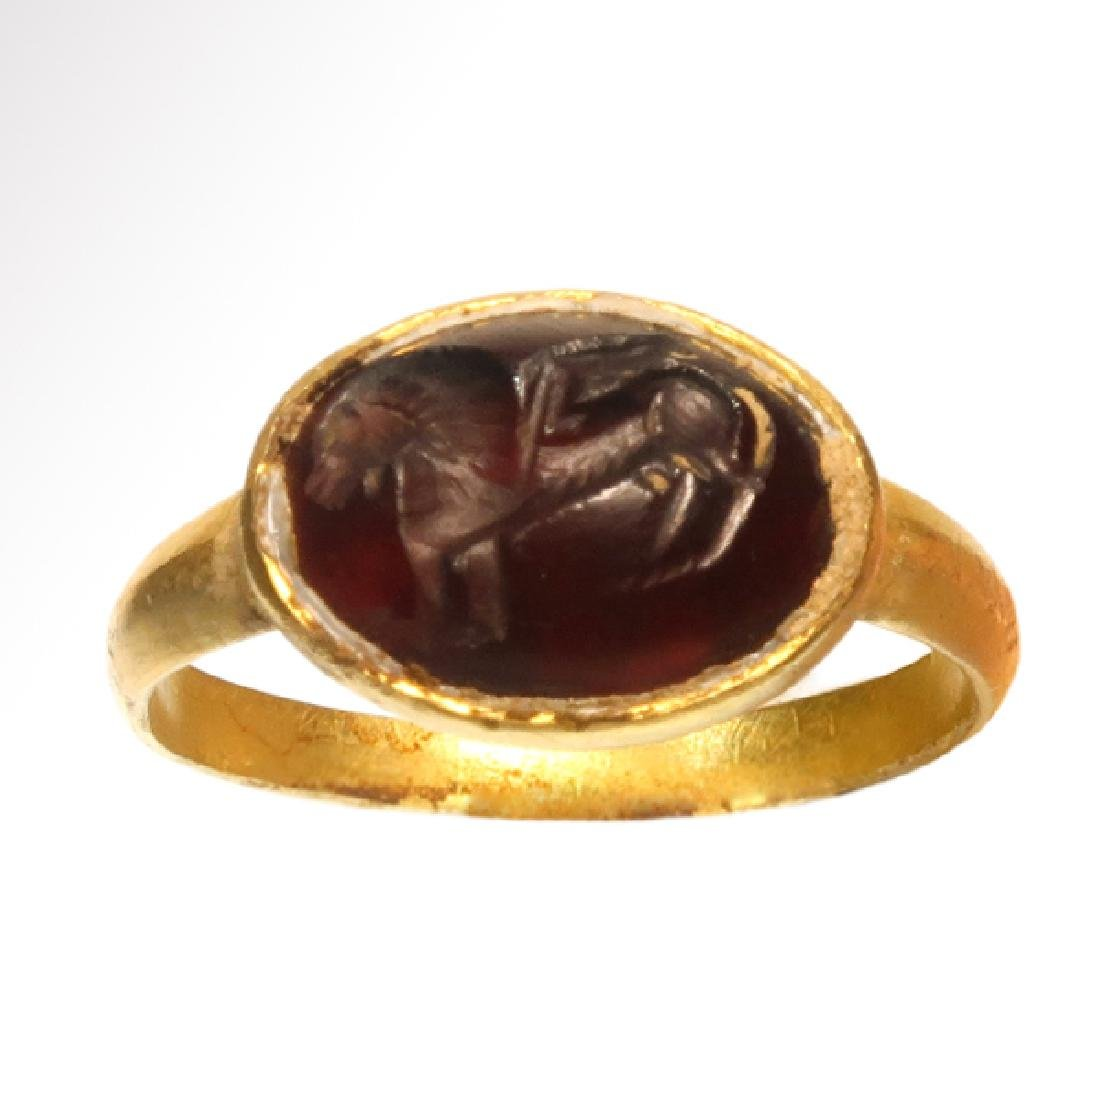 Roman Gold Ring with Garnet Intaglio with Winged Lion